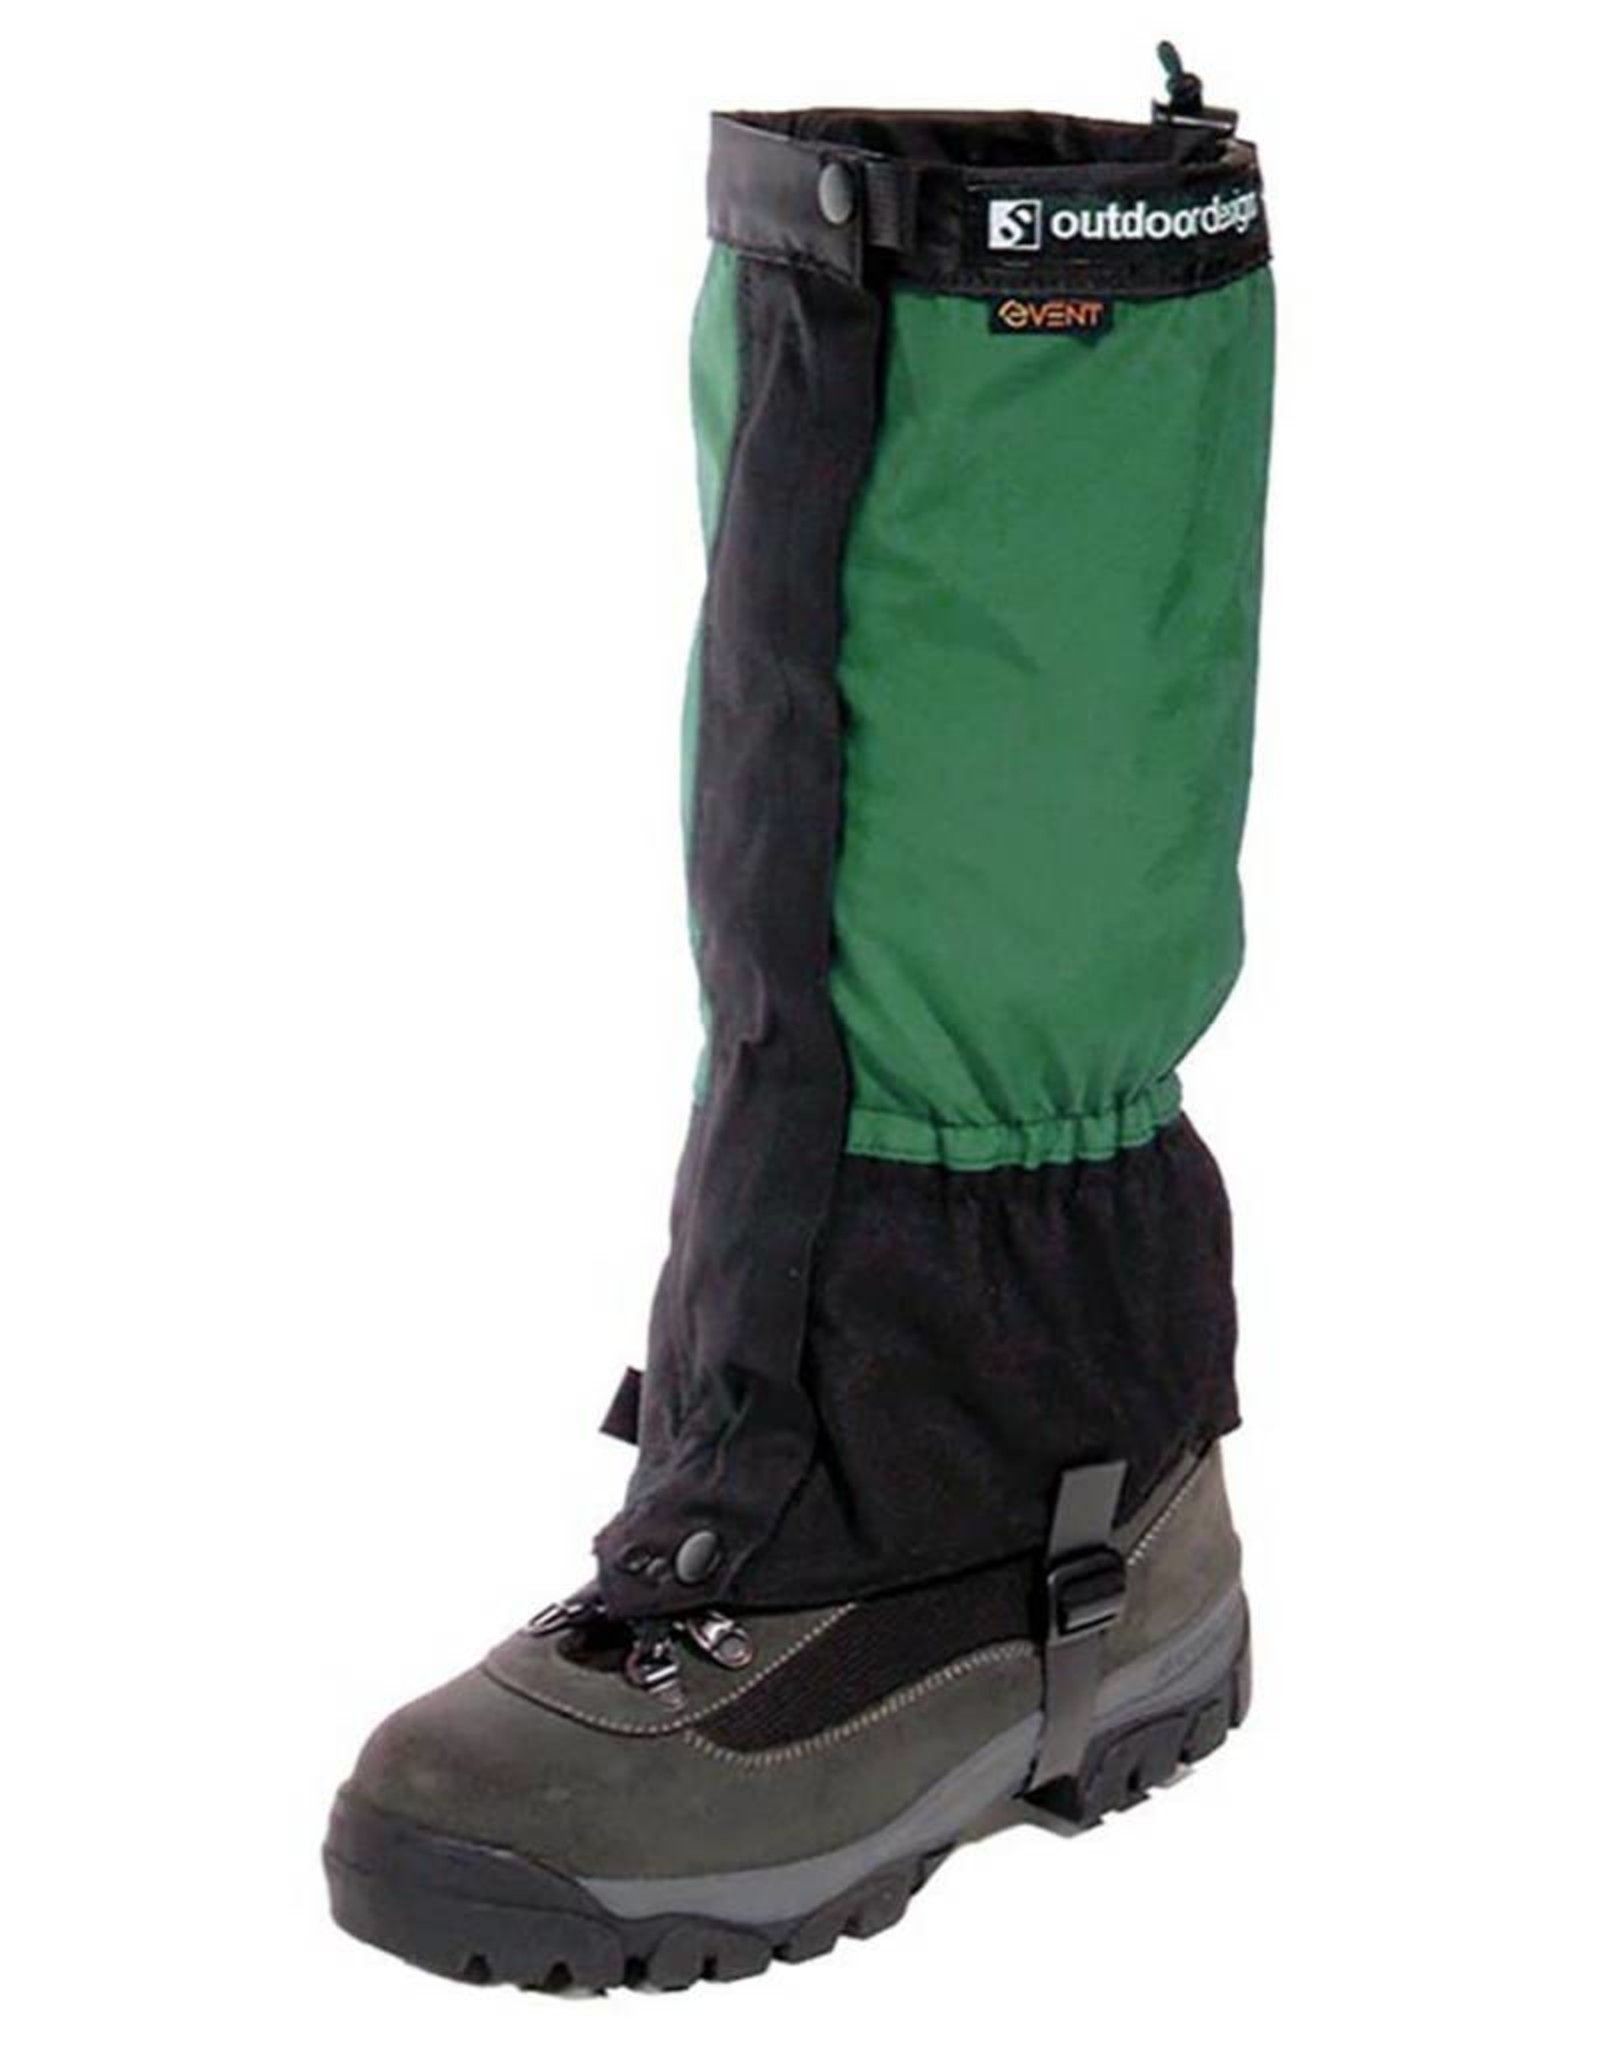 Outdoor Designs Perma eVent Gaiter MD